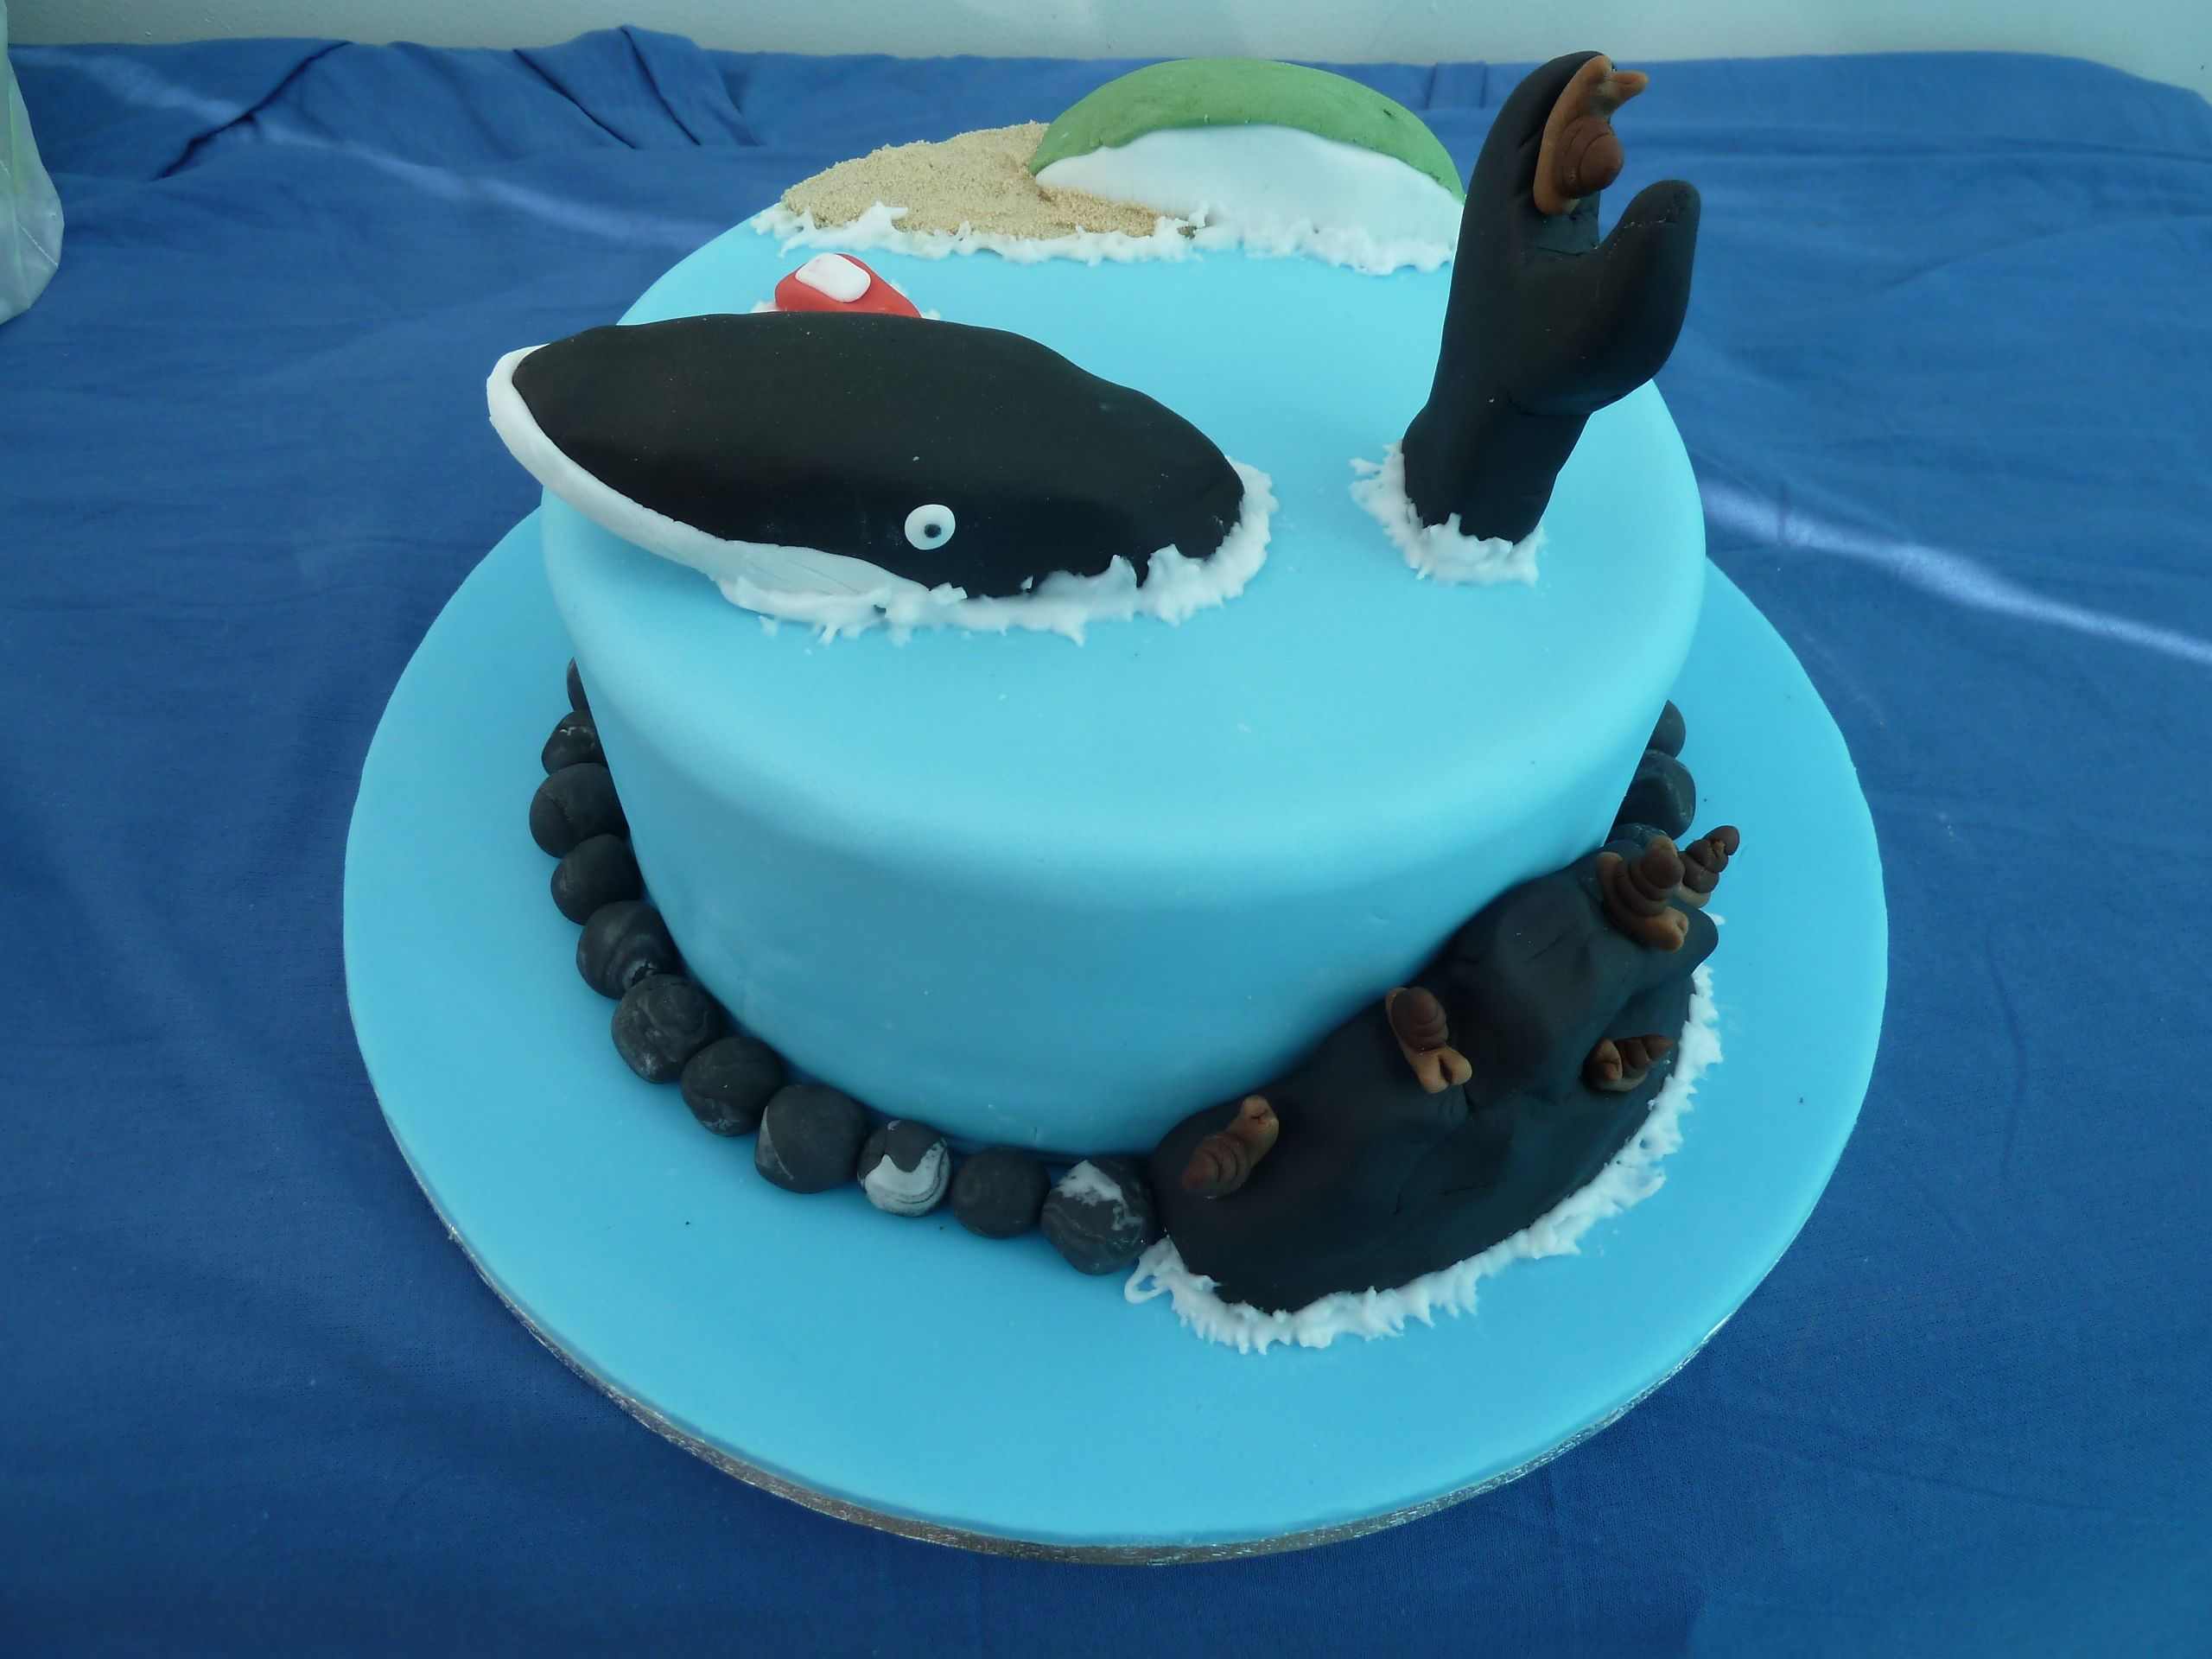 Zachs 6th Birthday Cake The Snail And The Whale Of Course R